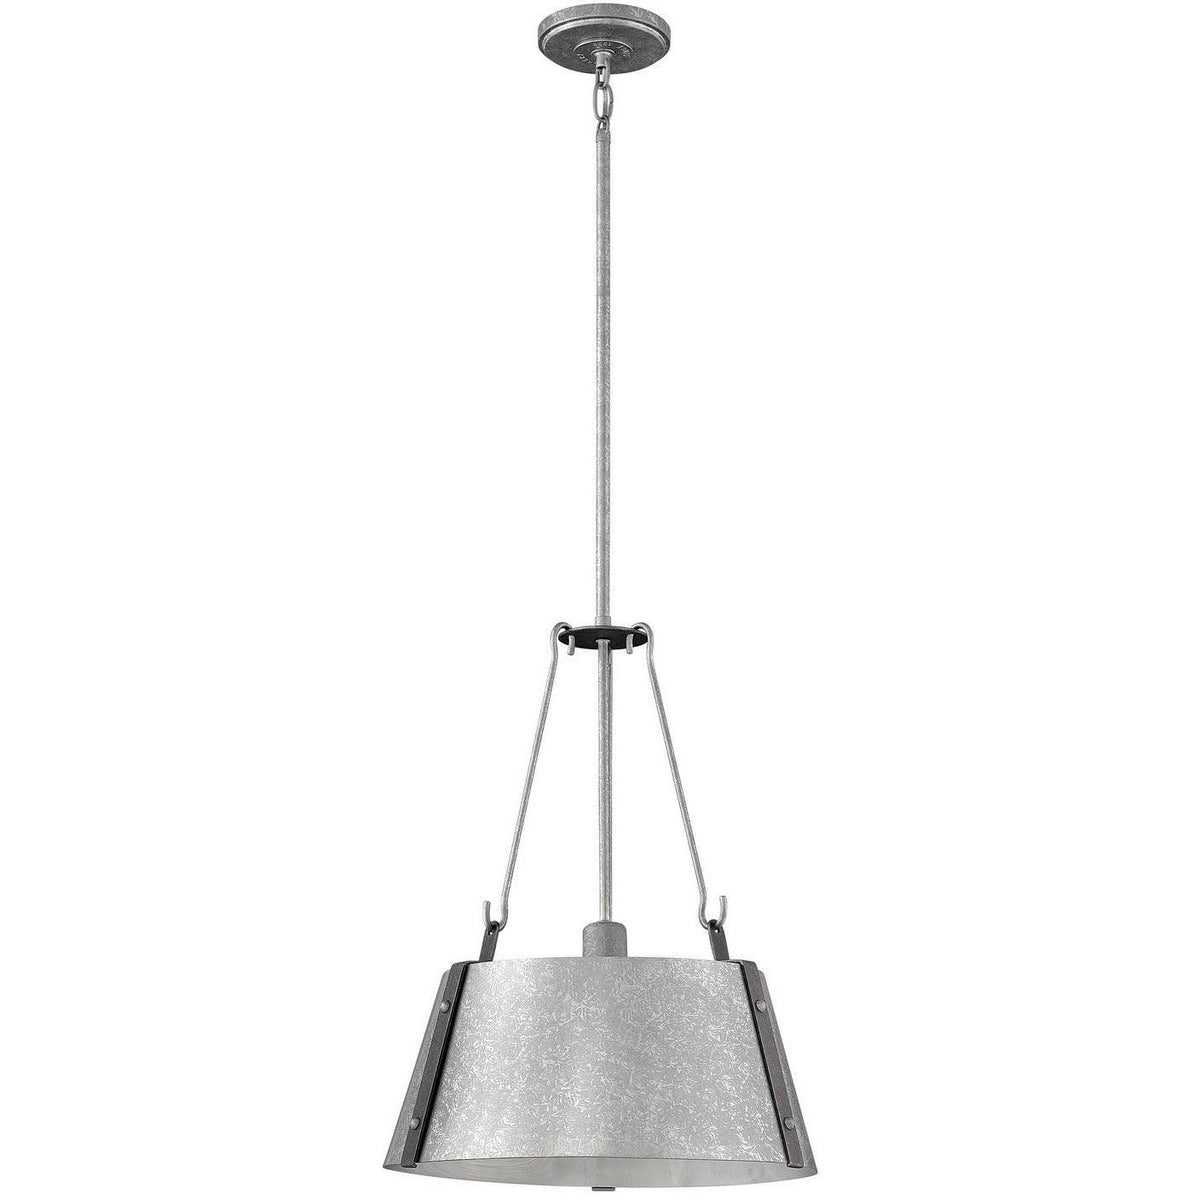 Hinkley Canada - 3394GV - One Light Pendant - Cartwright - Galvanized